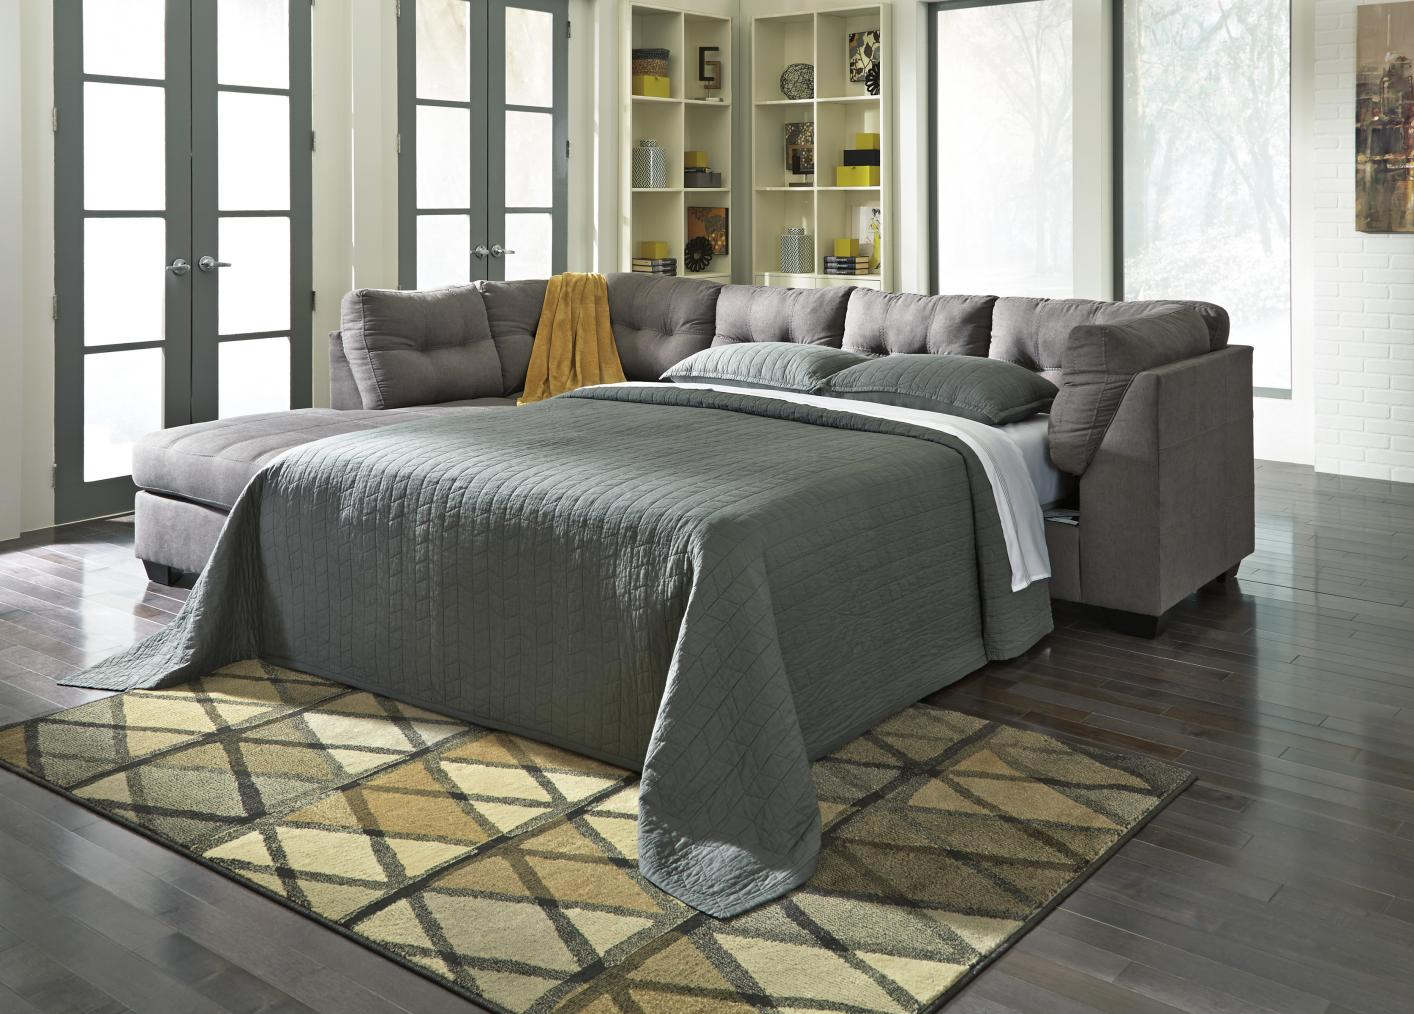 maier grey fabric sectional sleeper sofa steal a sofa furniture outlet los angeles ca. Black Bedroom Furniture Sets. Home Design Ideas